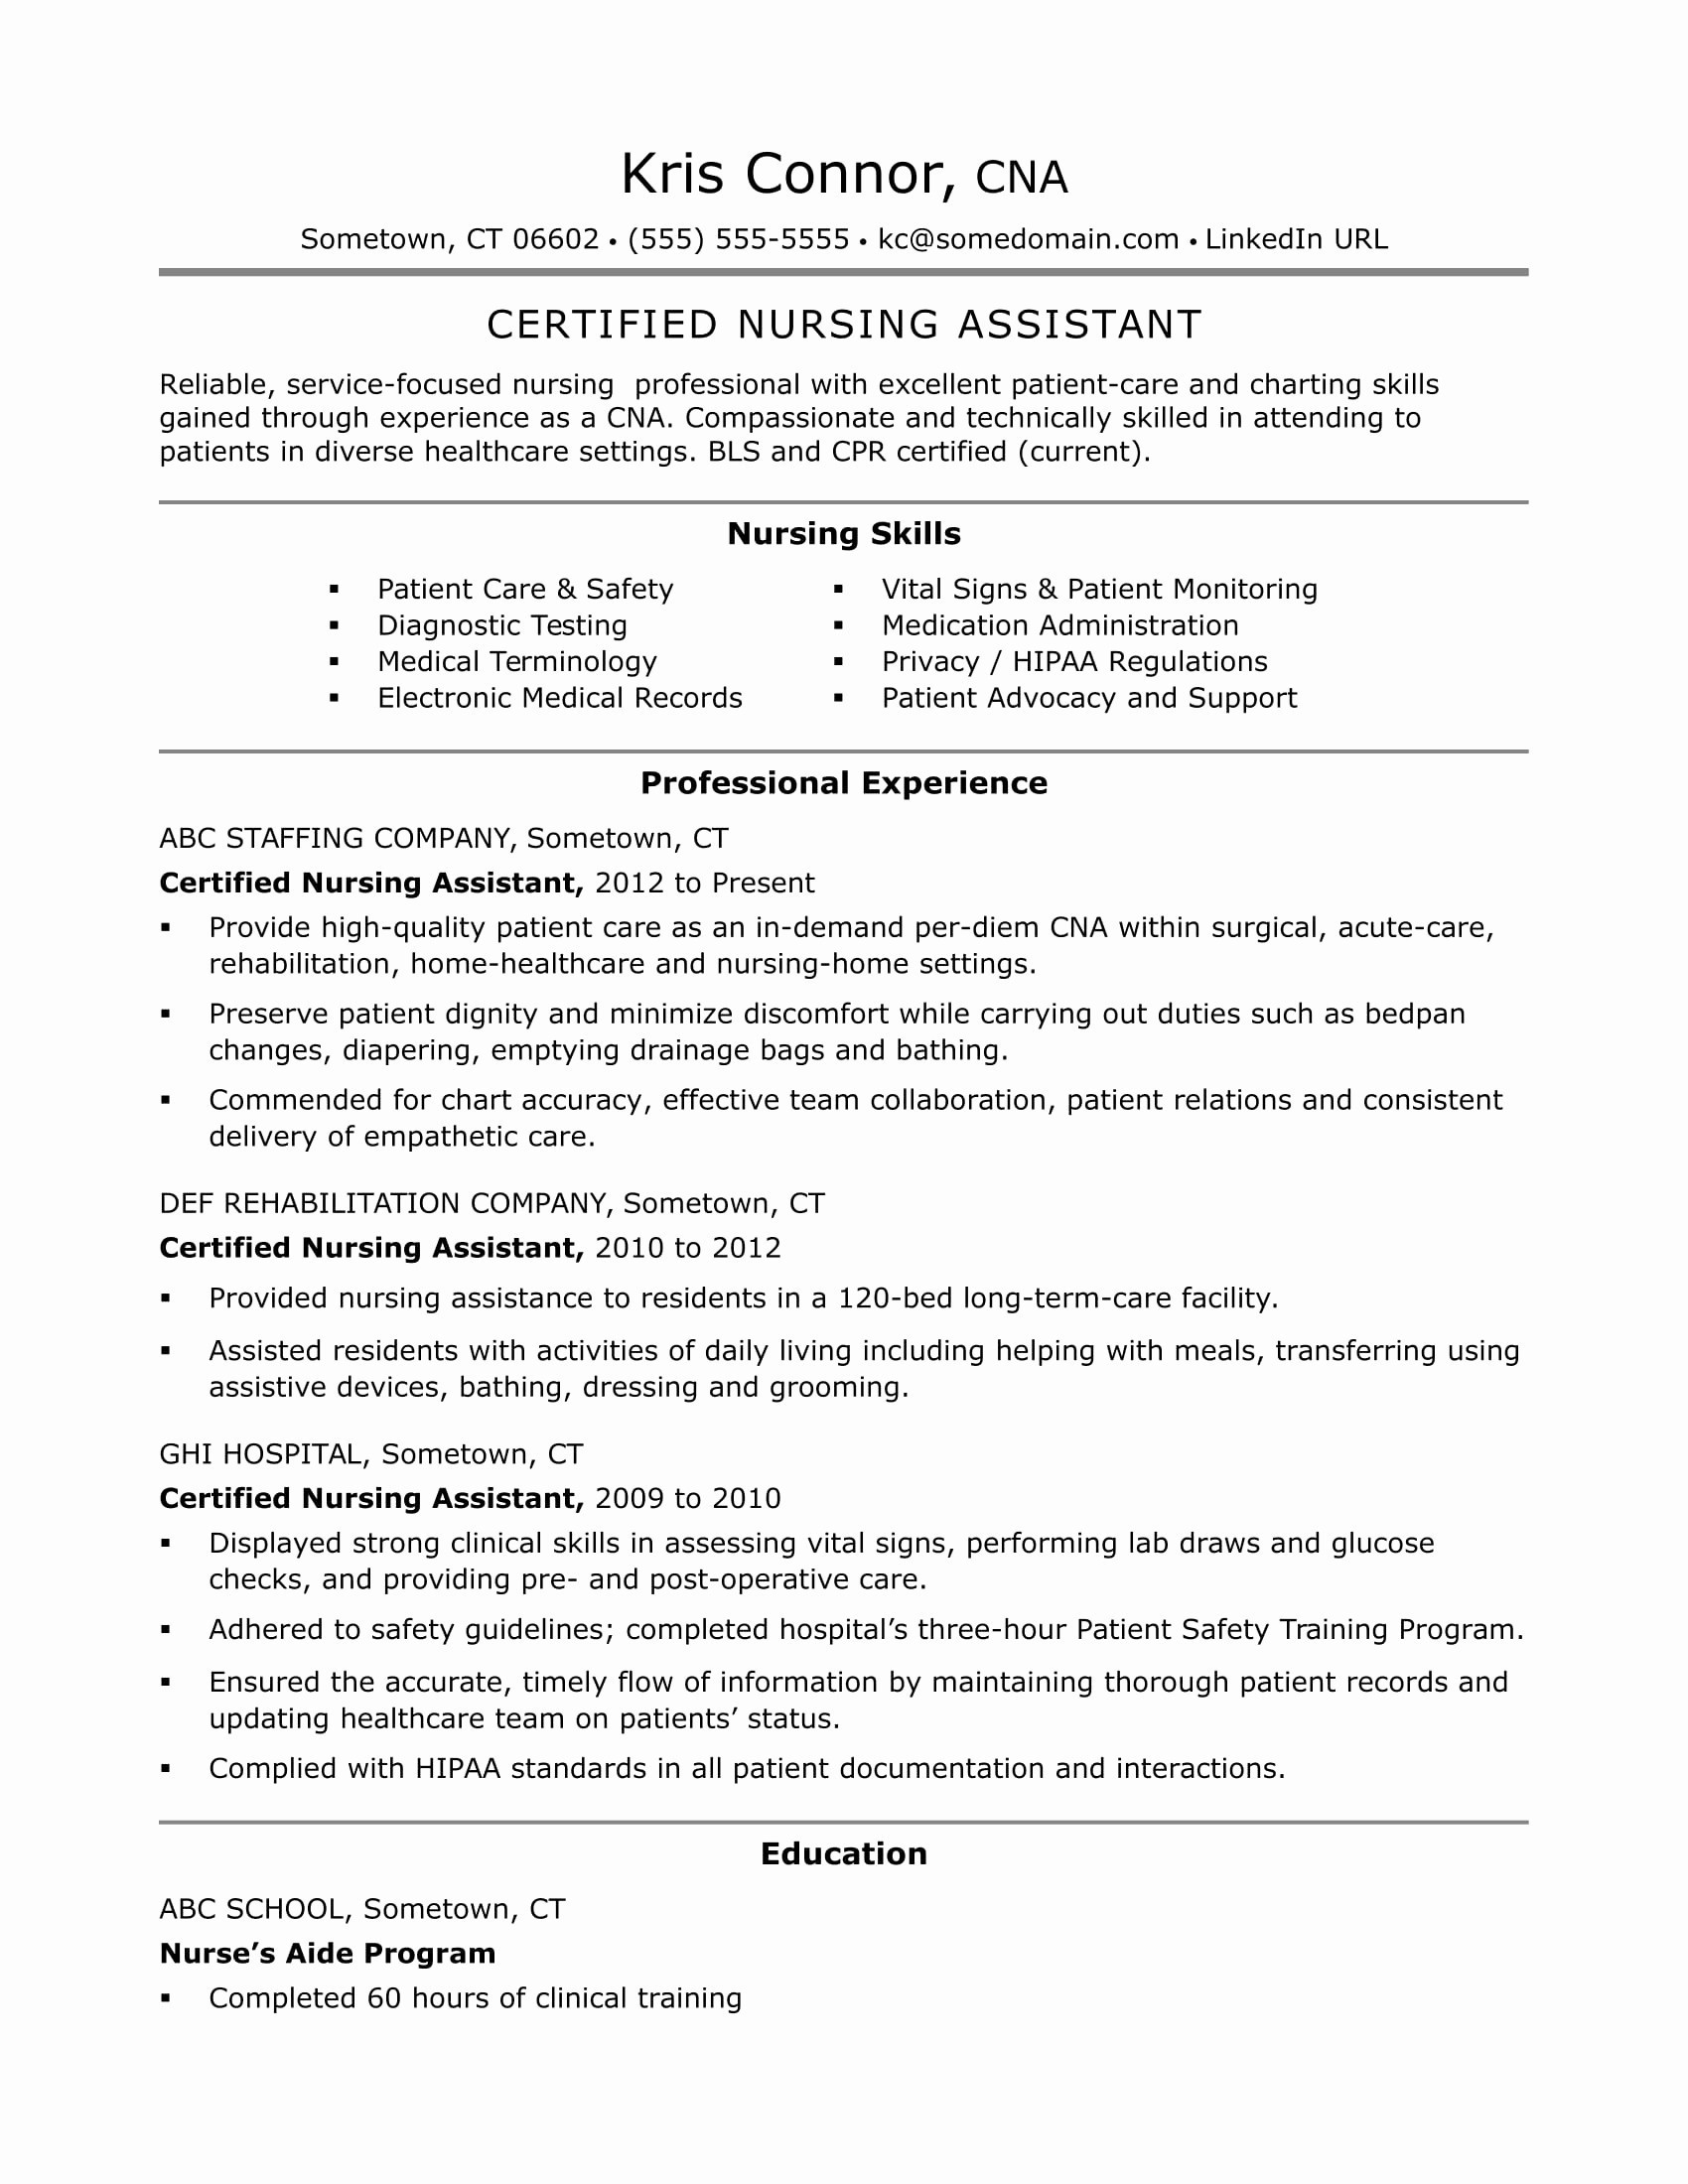 Hr Recruiter Resume - Hr Recruiter Resume